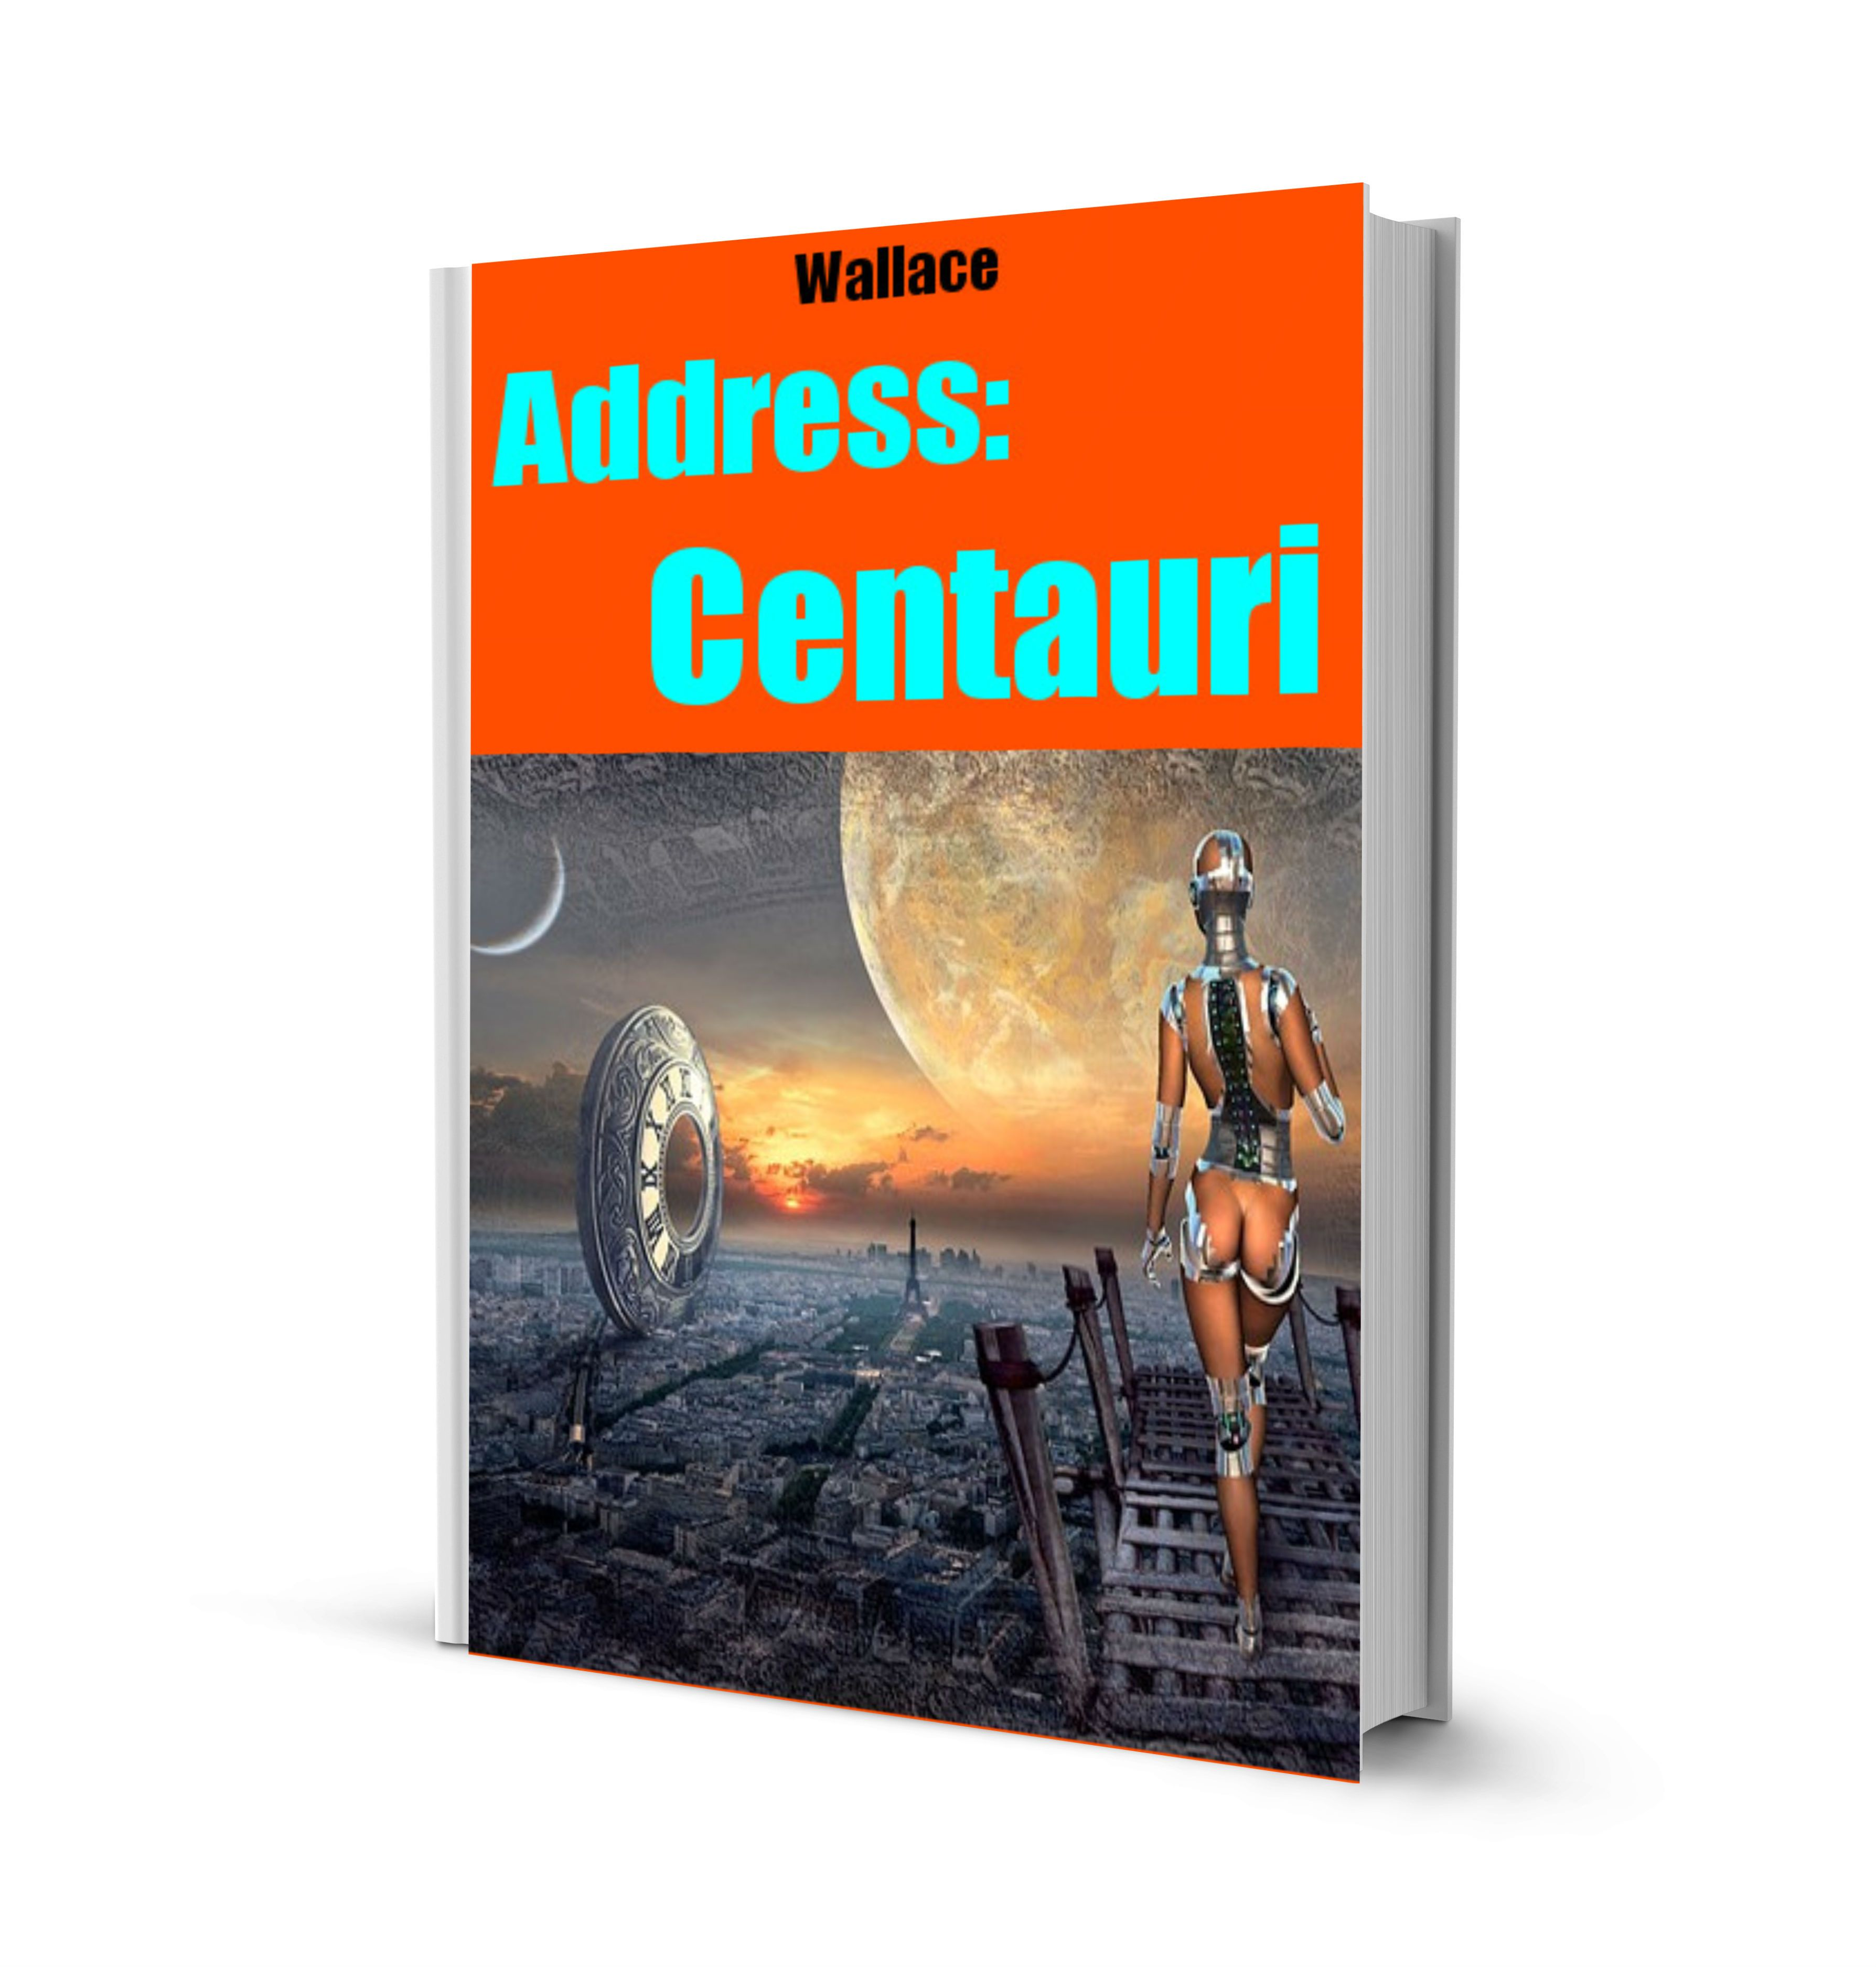 Address centauri scifi novel ebook quality cheap ebooks pdf free quizzes to test your awareness on most vital topics in life fandeluxe Choice Image